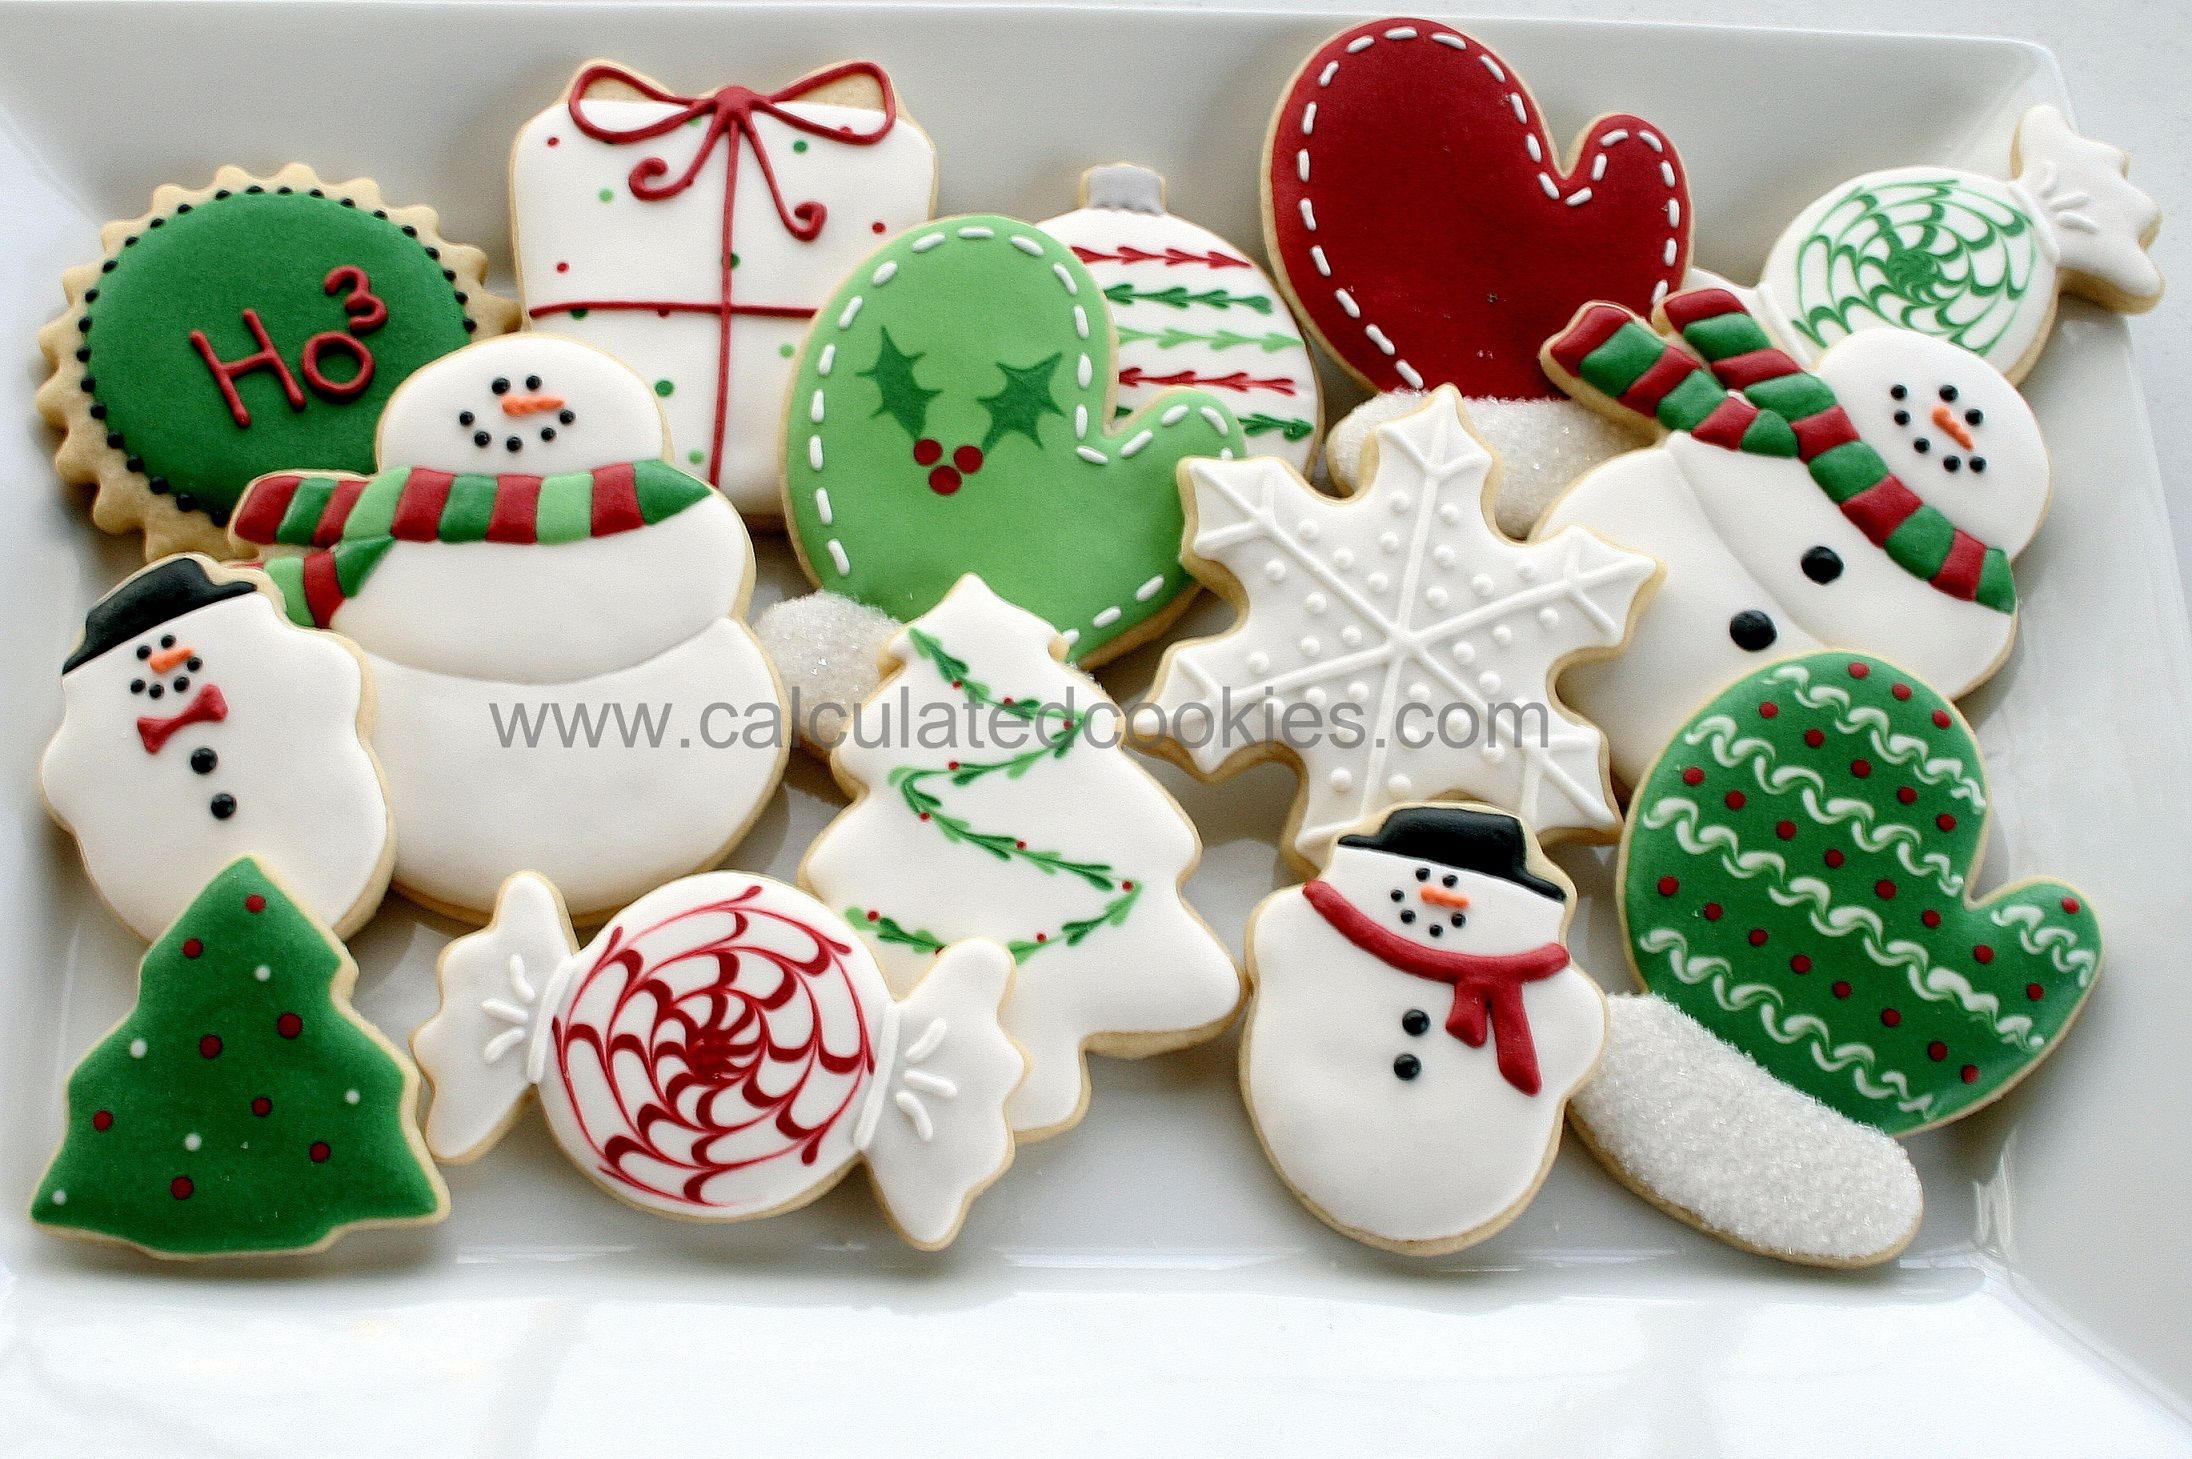 Custom Christmas Sugar Cookies By Calculated Cookies Calculated